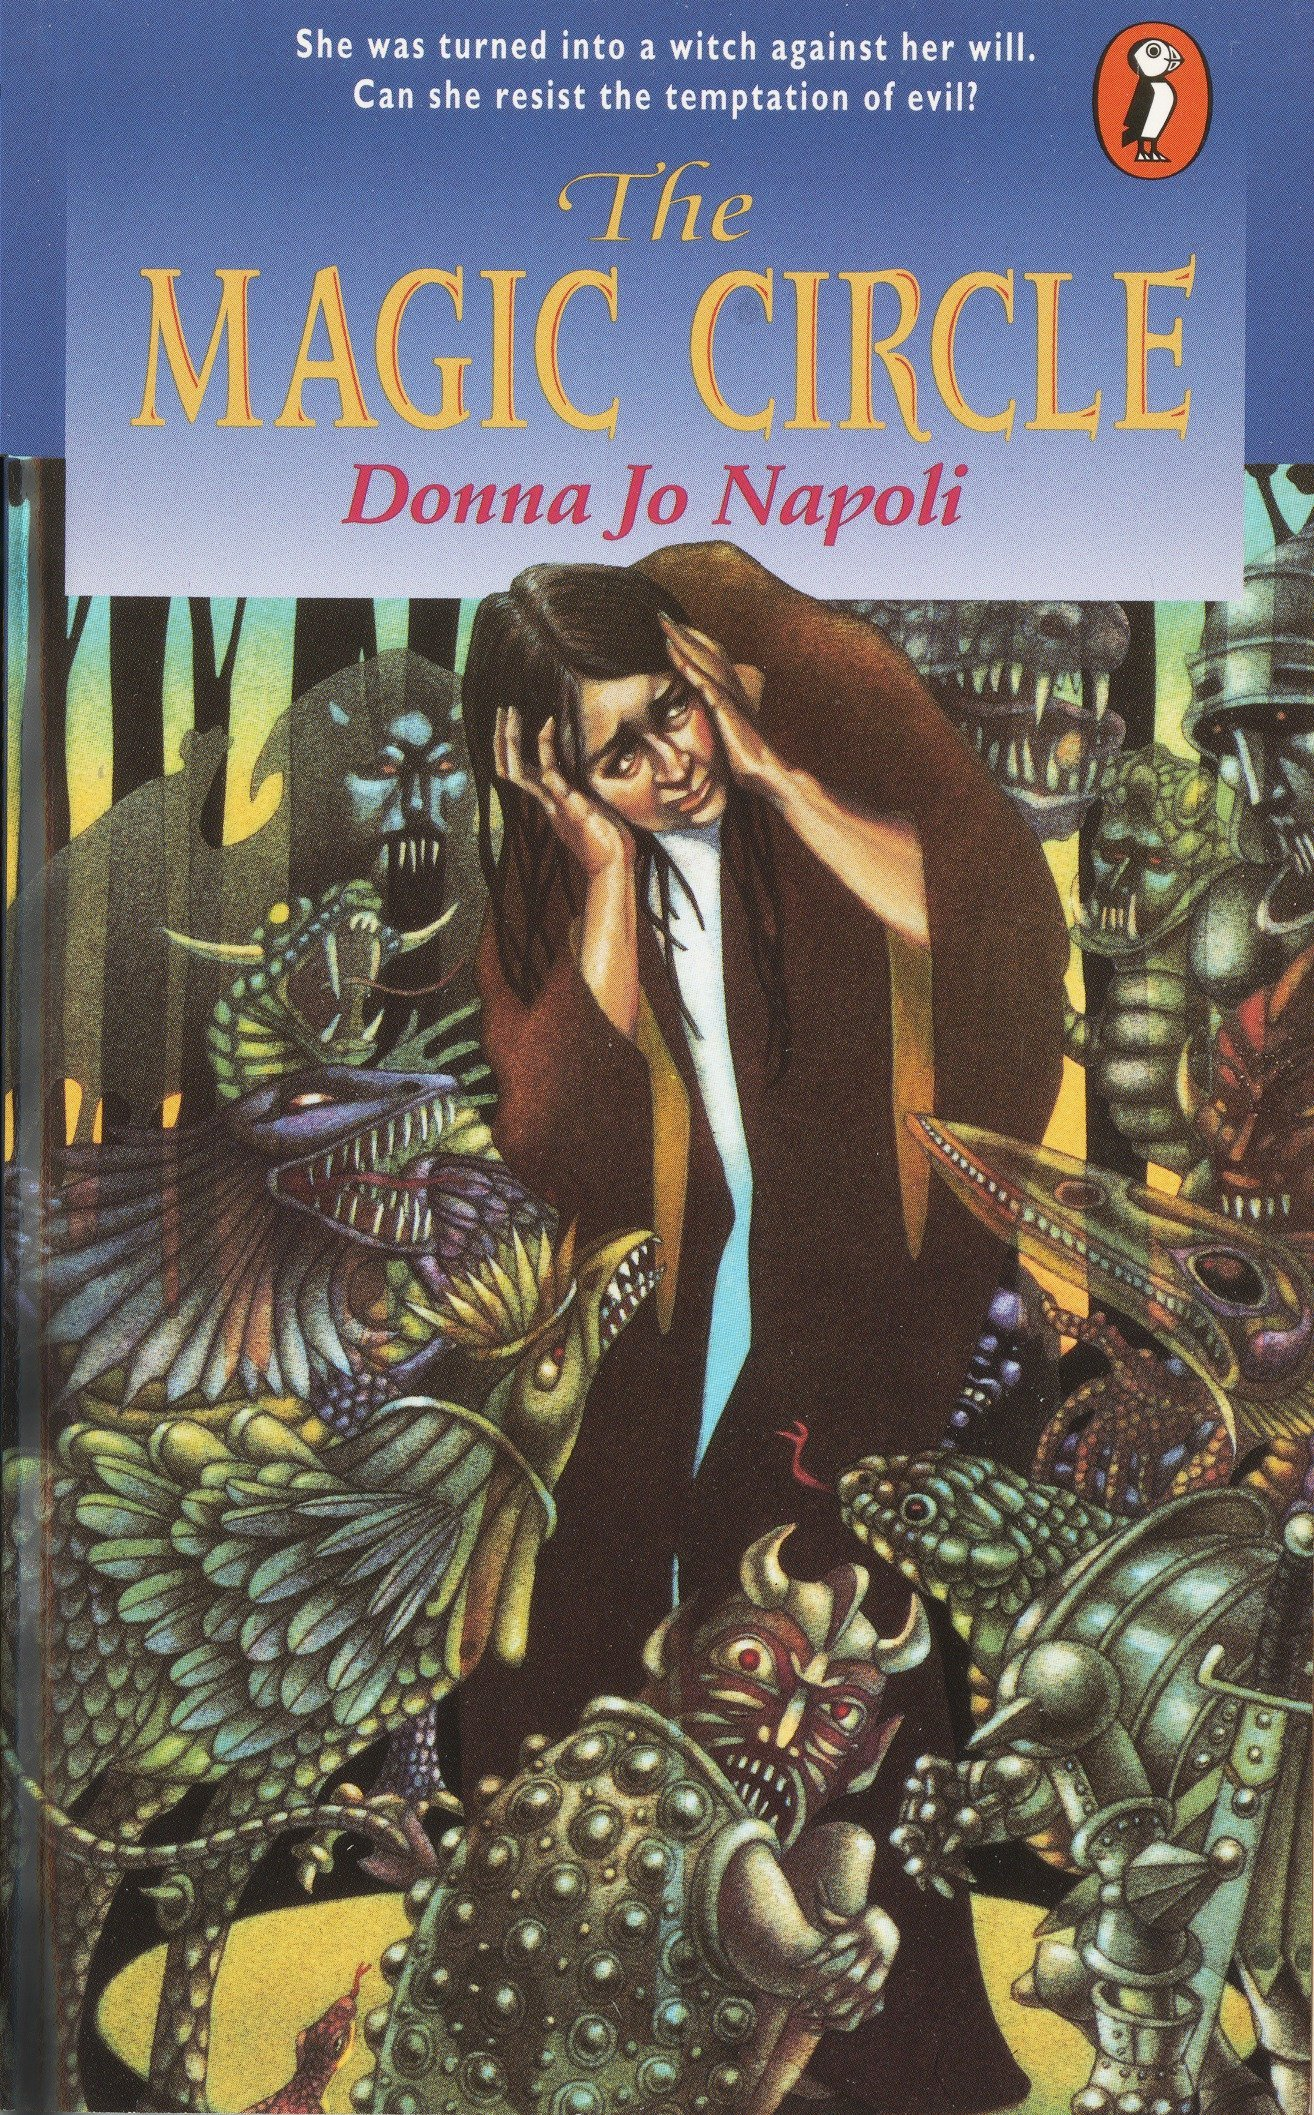 Amazon.com: The Magic Circle (9780140374391): Donna Jo Napoli: Books